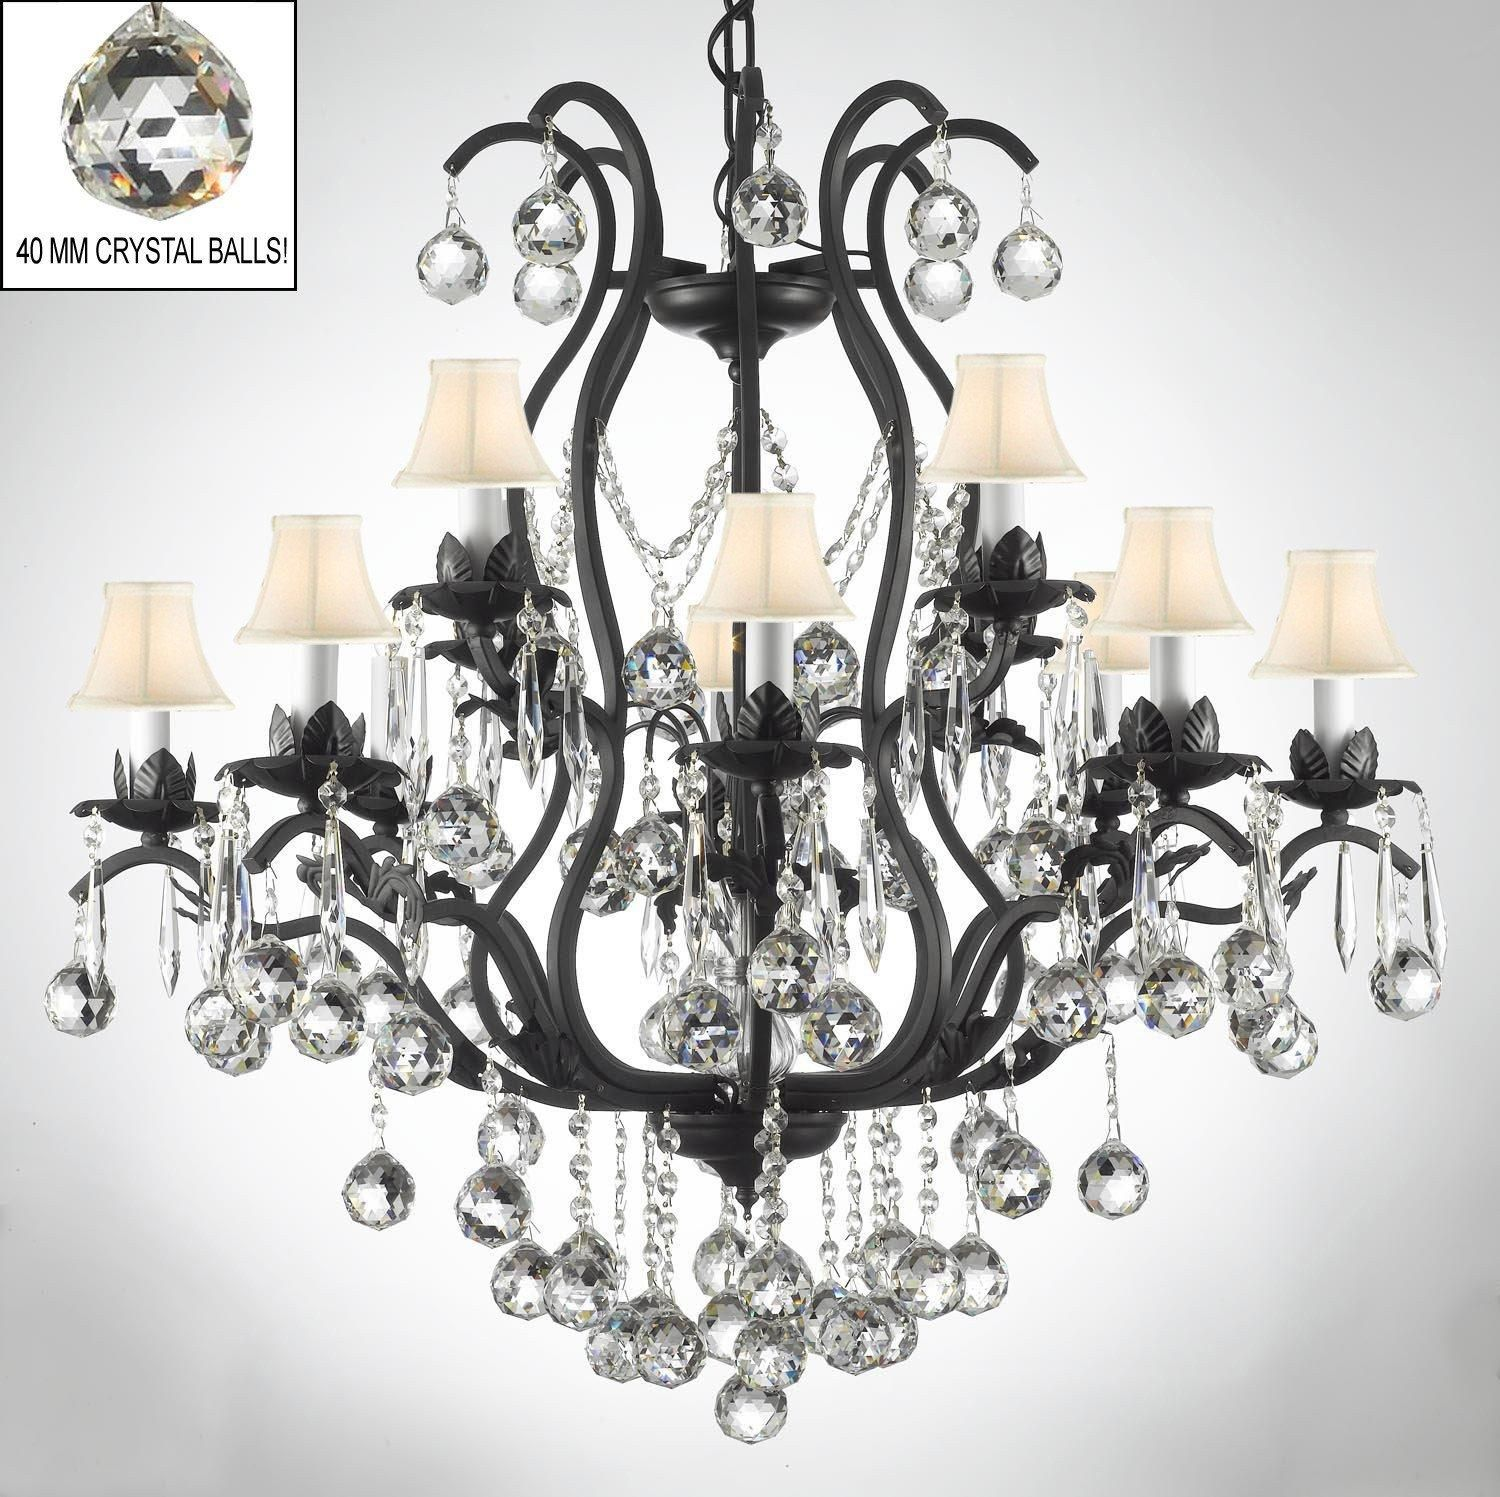 Wrought Iron Empress Chandelier Lighting s Dressed With Faceted Balls & White Shades